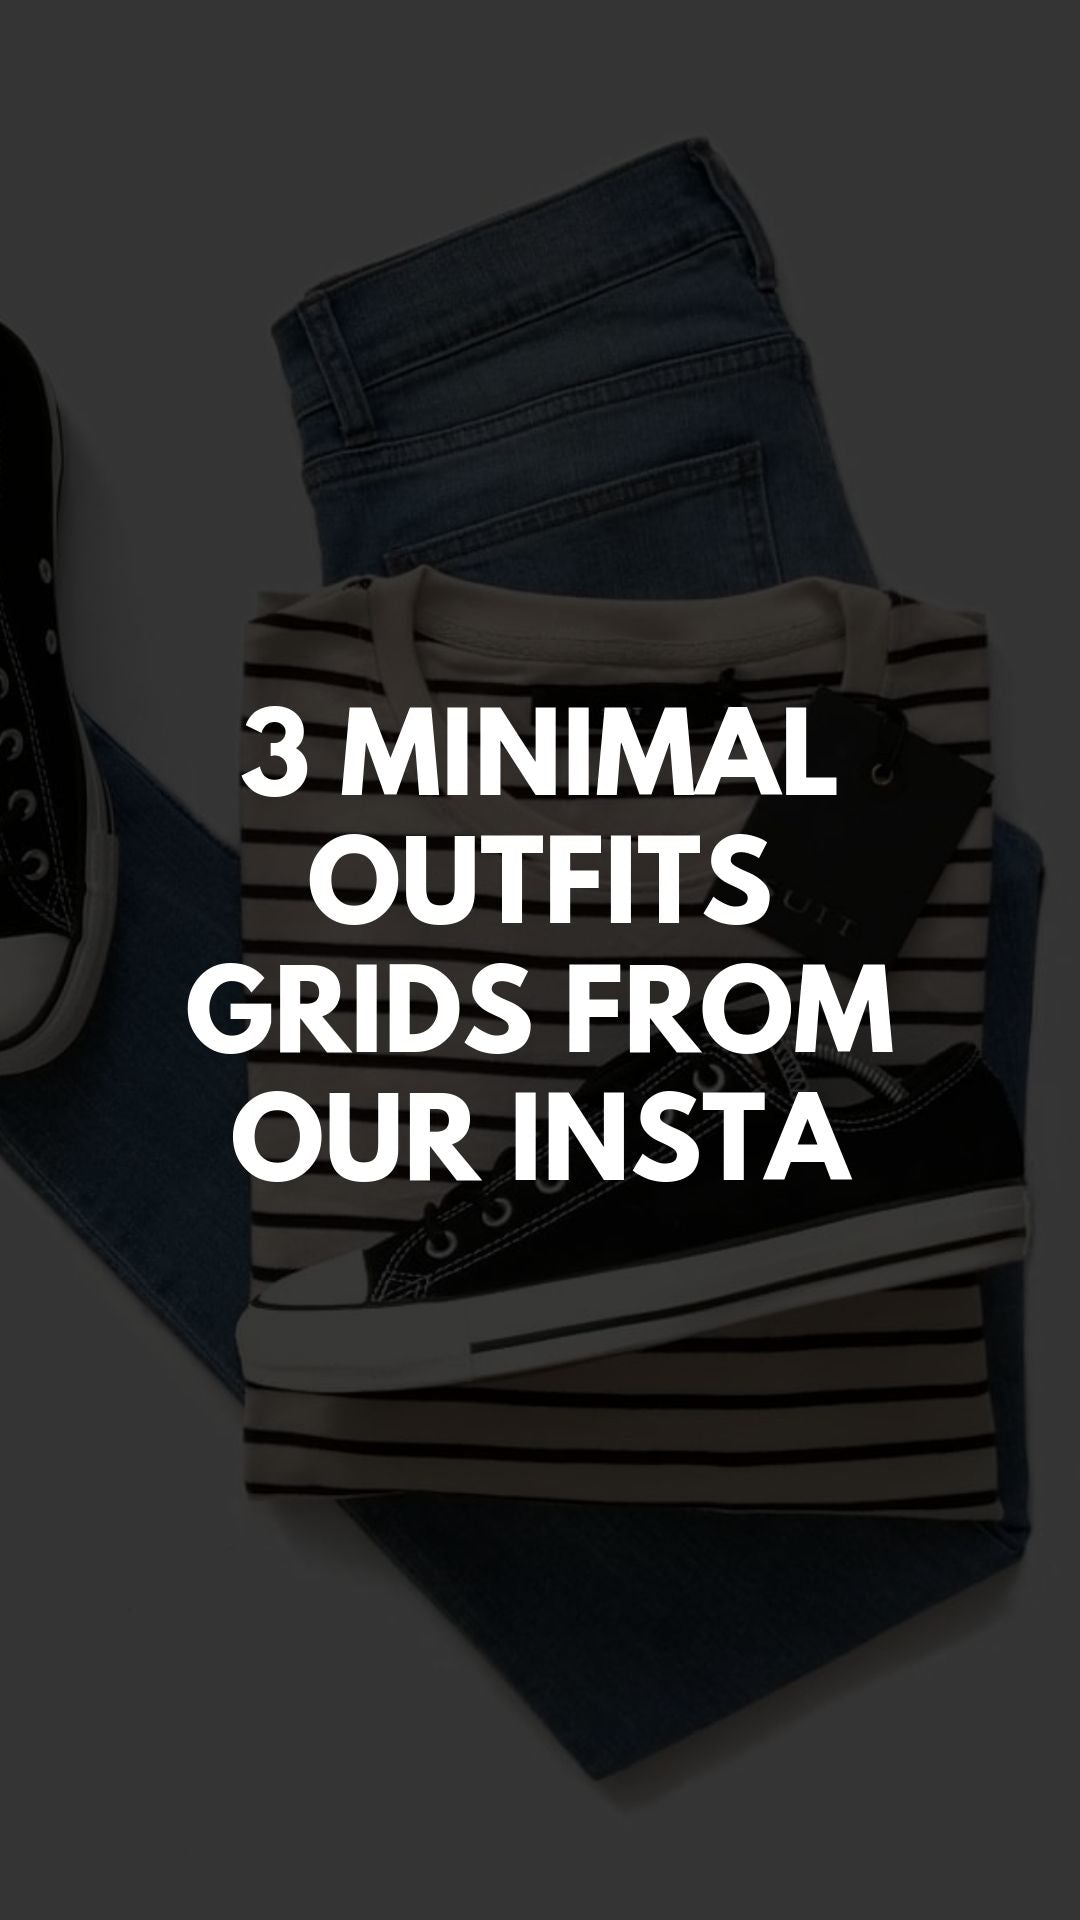 3 MINIMAL  OUTFITS GRIDS FROM OUR INSTA